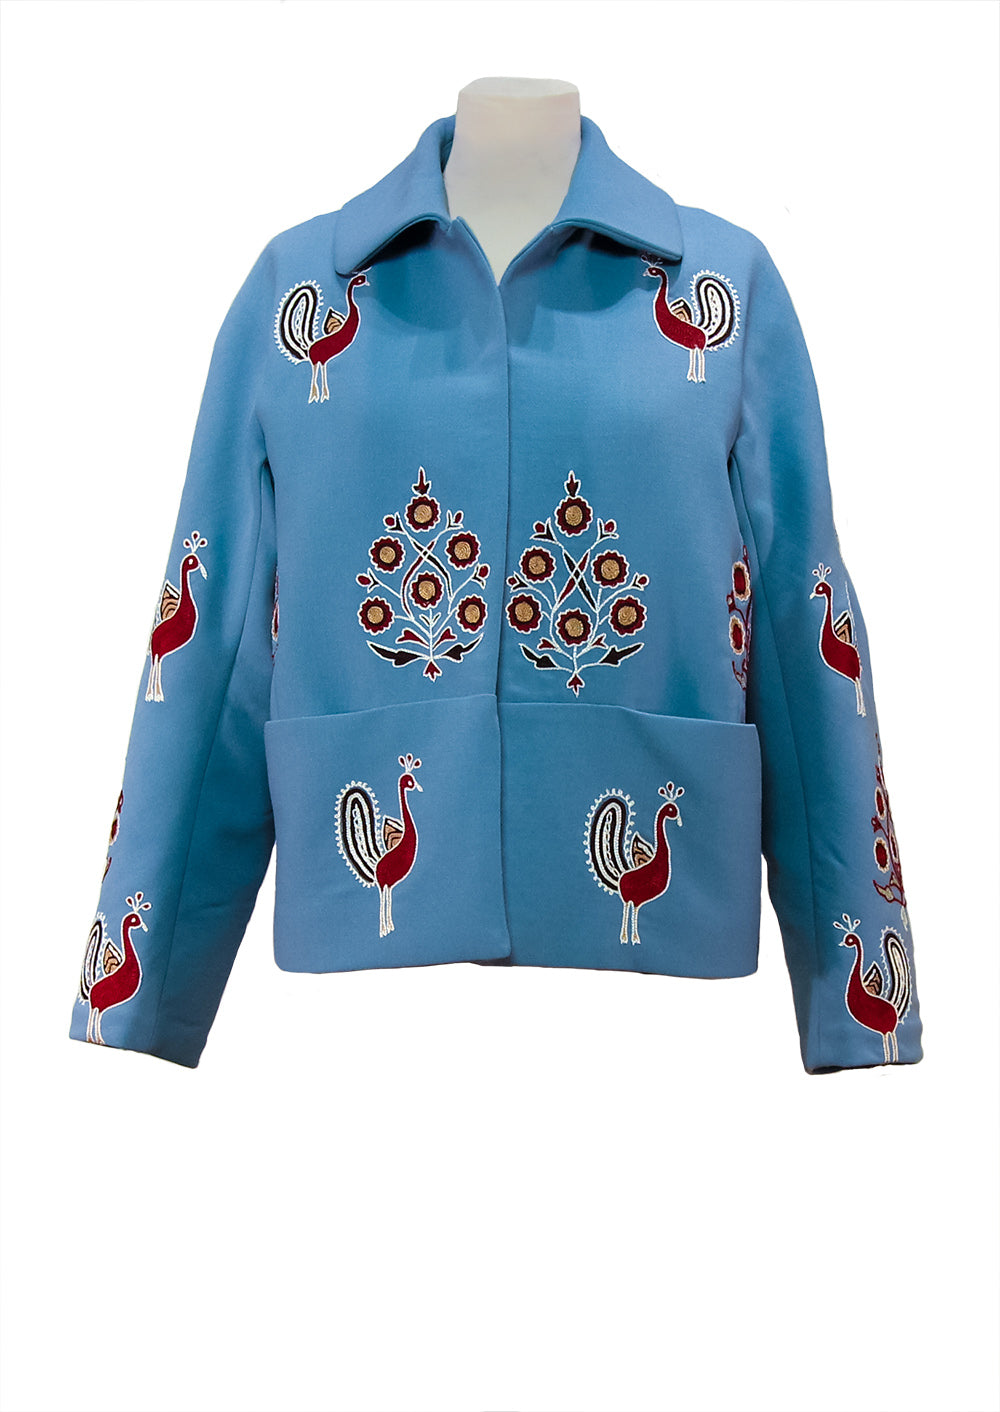 Wool Jacket with hand embroidery